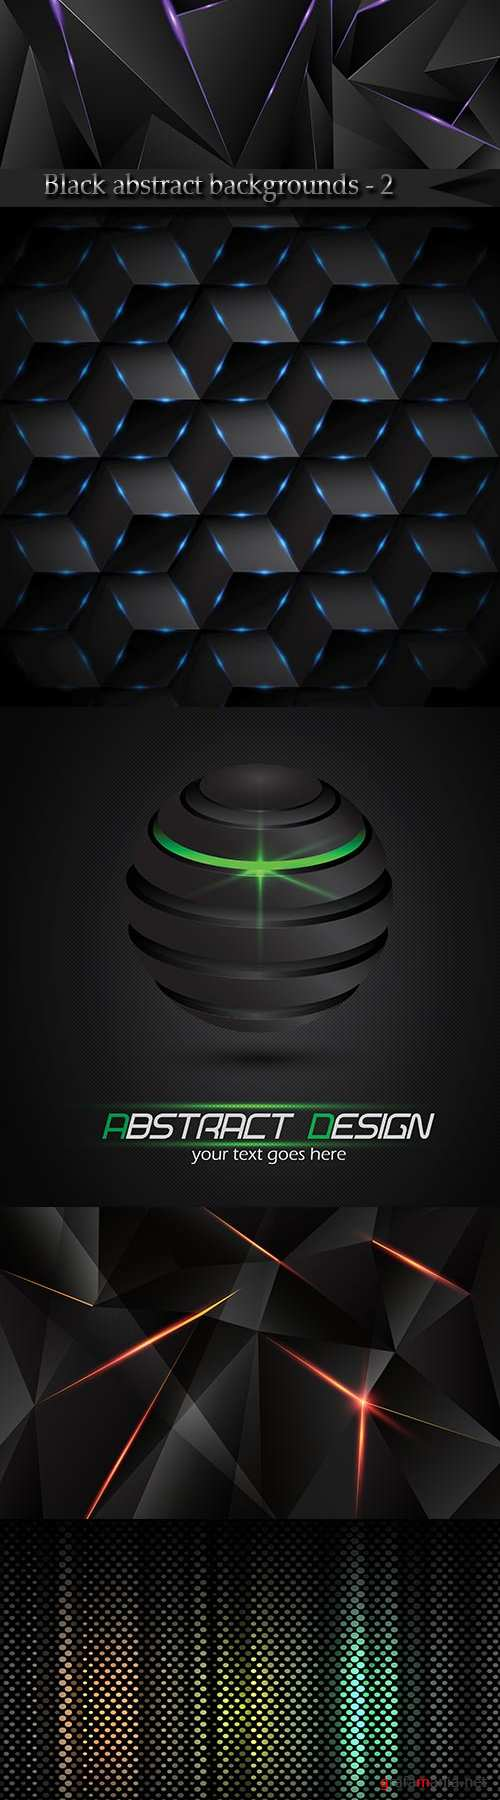 Black abstract vector backgrounds - 2